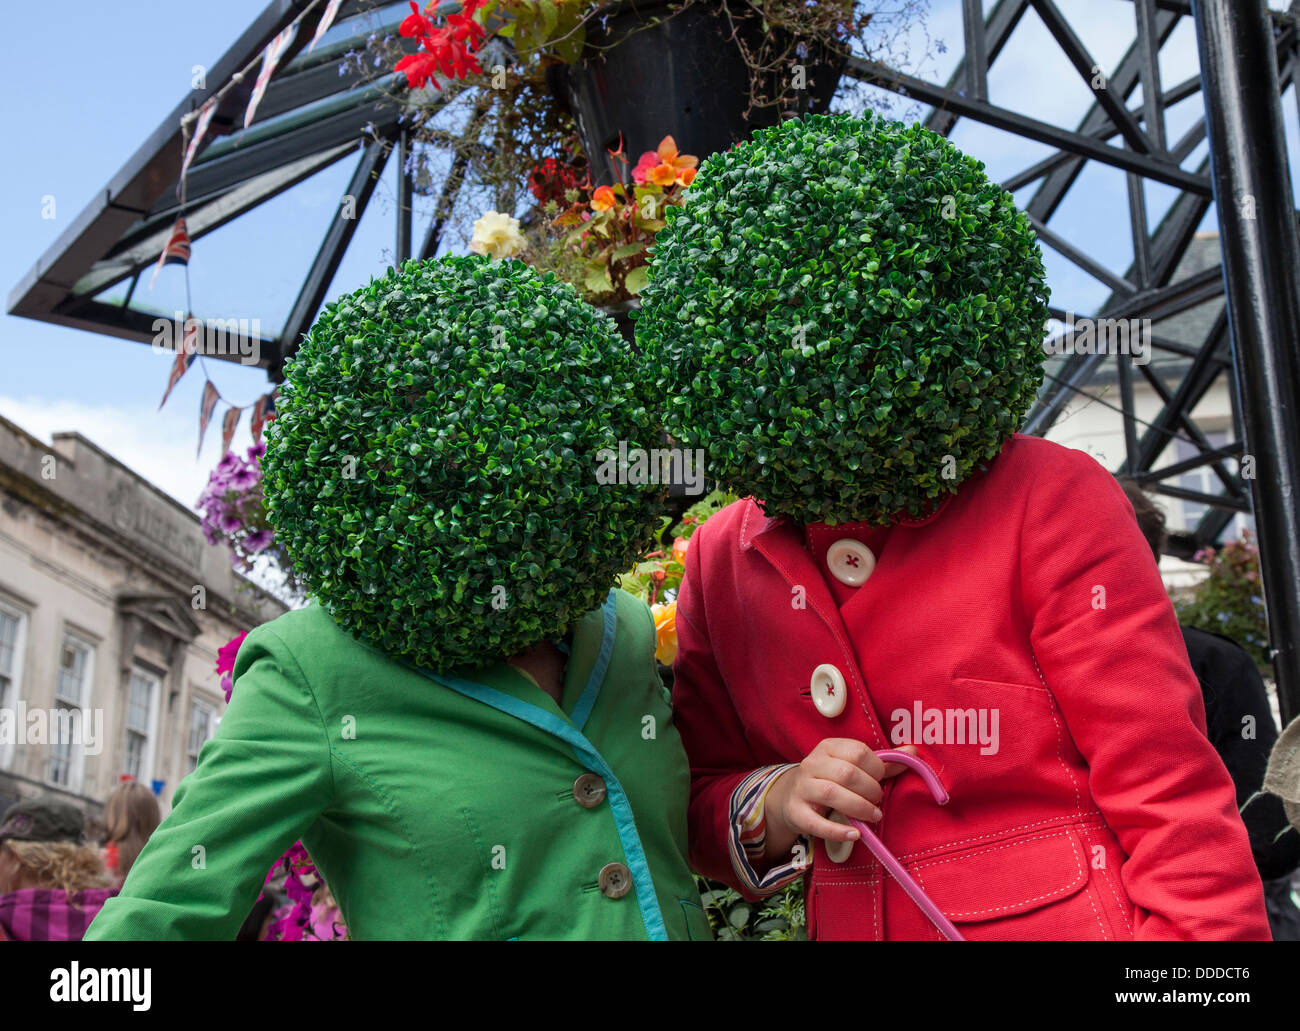 Round, circular, green head gear, topiary leafy artifical wigs, worn